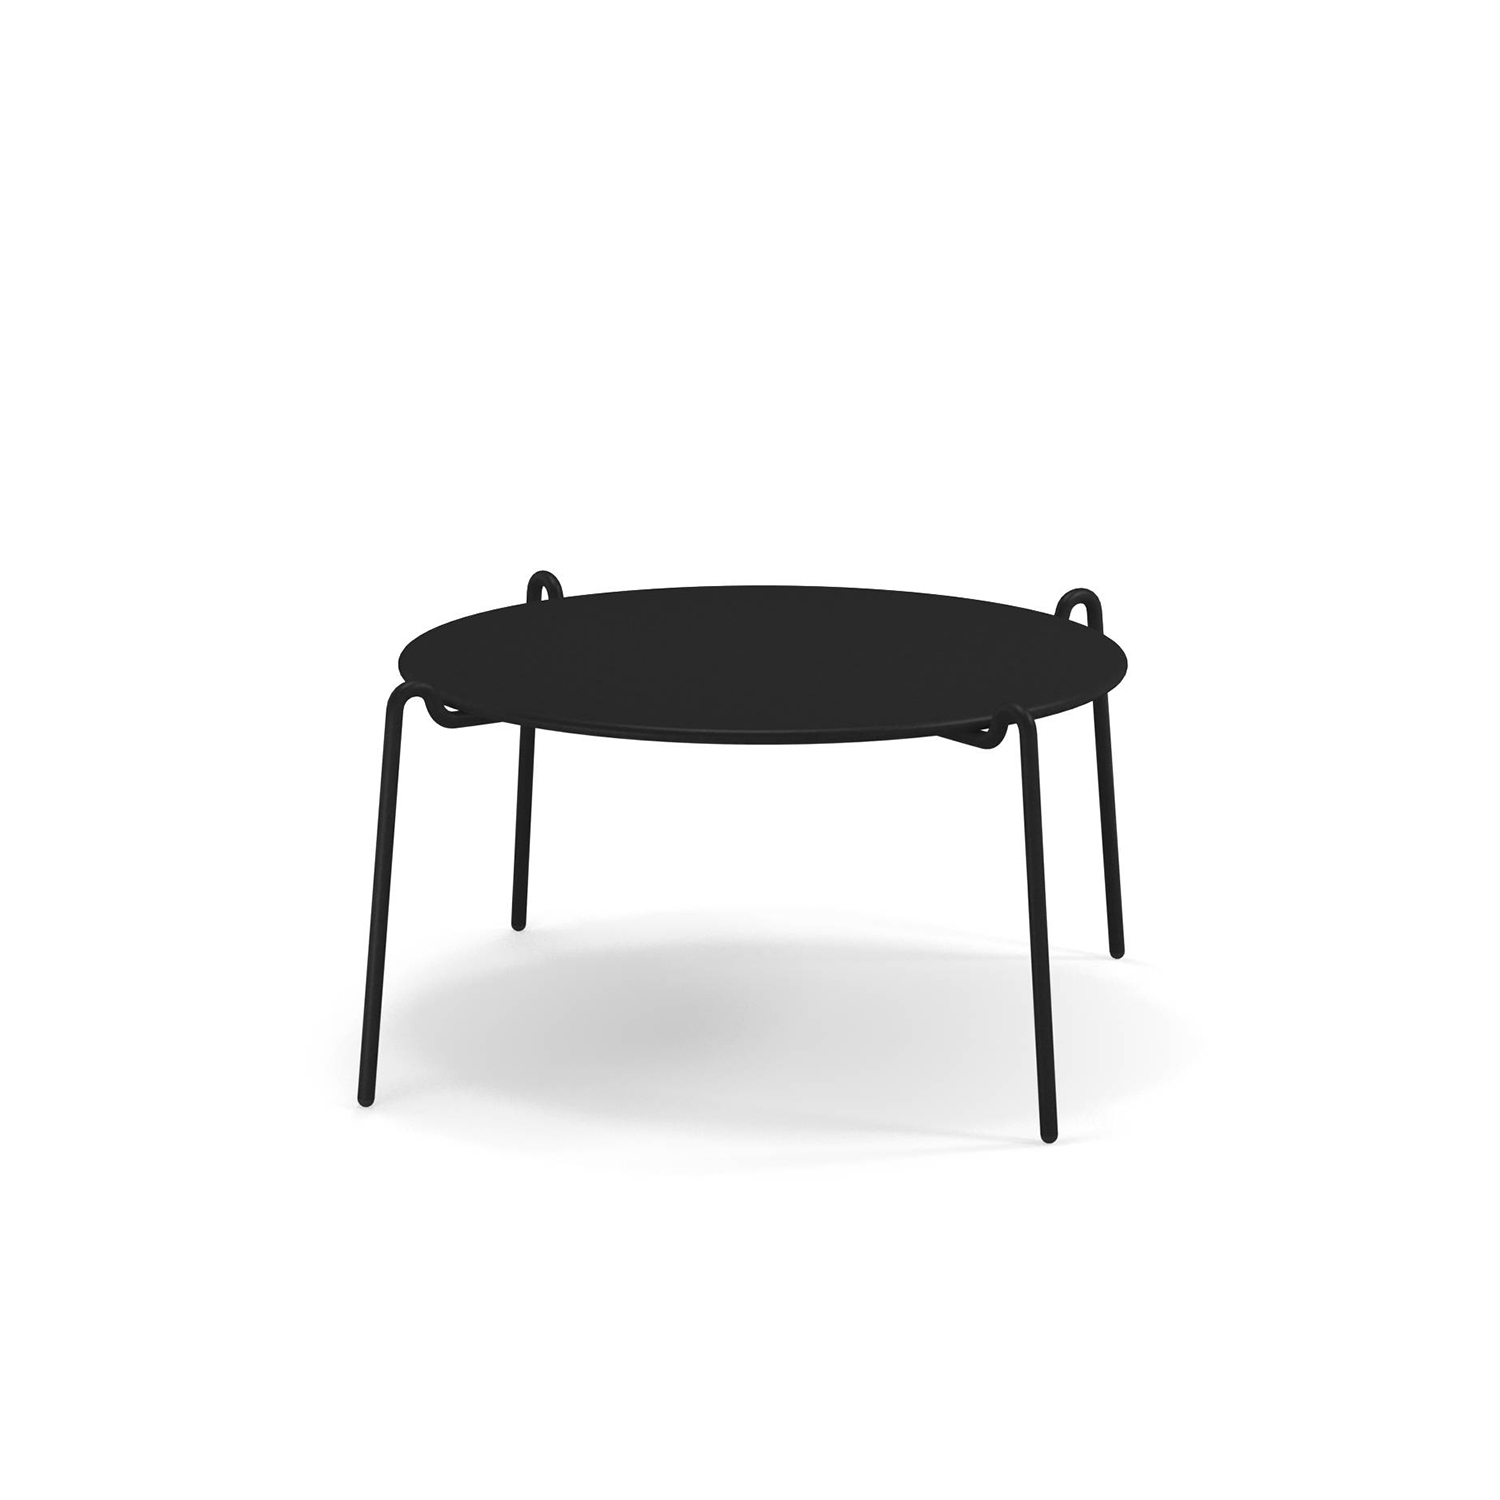 Rio R50 Coffee Table - <p>RIO R50 is an expertly crafted re-edition of the historic model Rio of the 70s. RIO R50 has a frame in ASFORM steel tube, high-quality steel with high mechanical performance and high resistance to weight. </p>